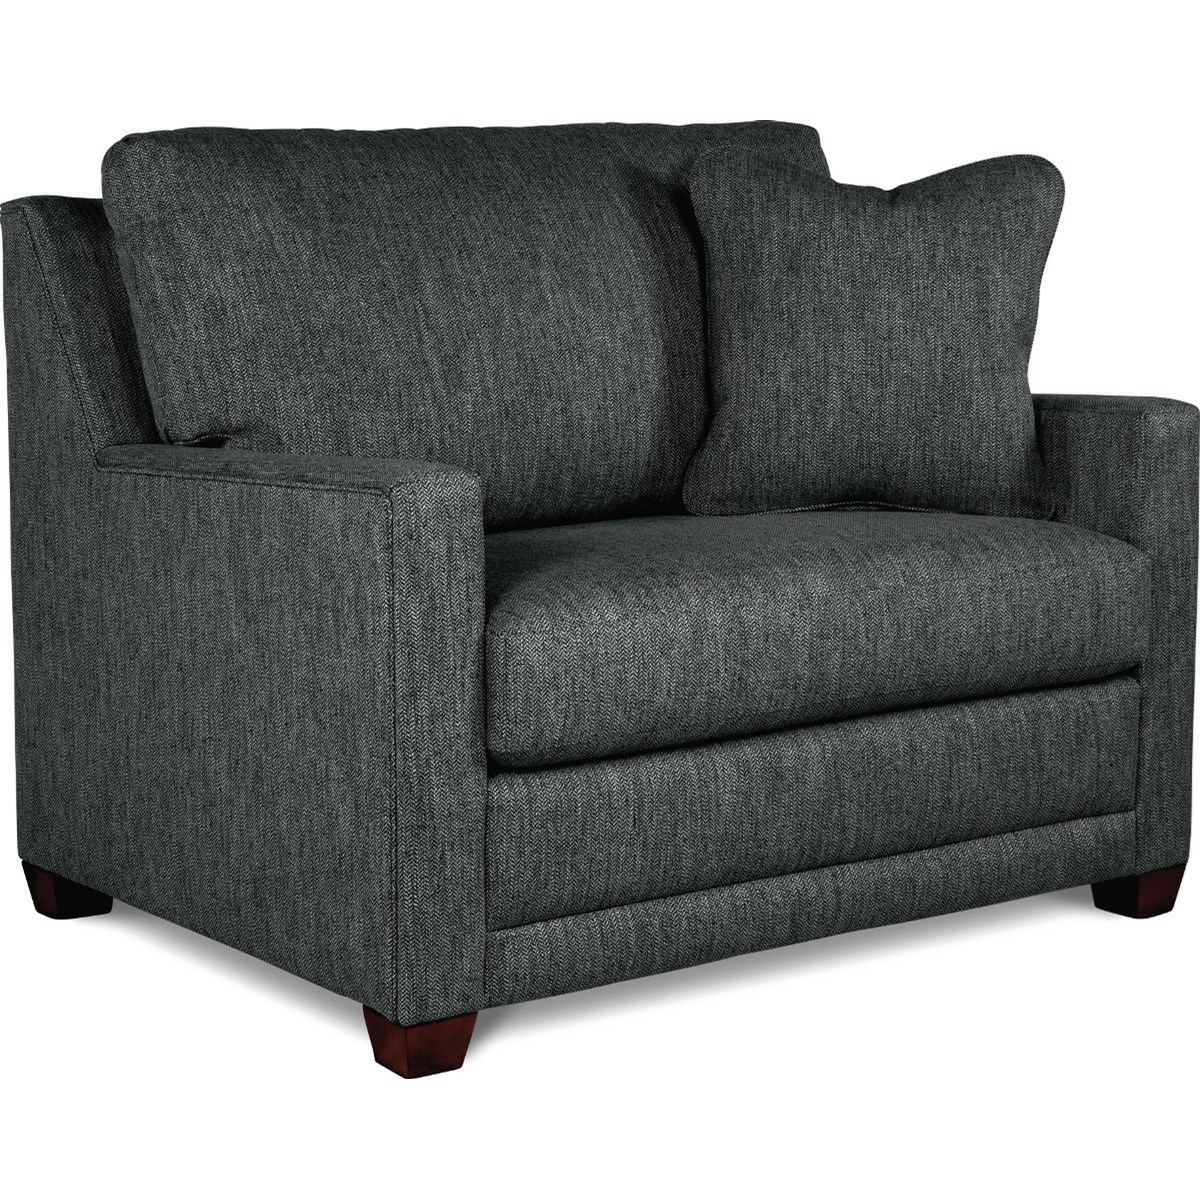 - La-Z-Boy Twilight Contemporary Twin Sofa Sleeper Bennett's